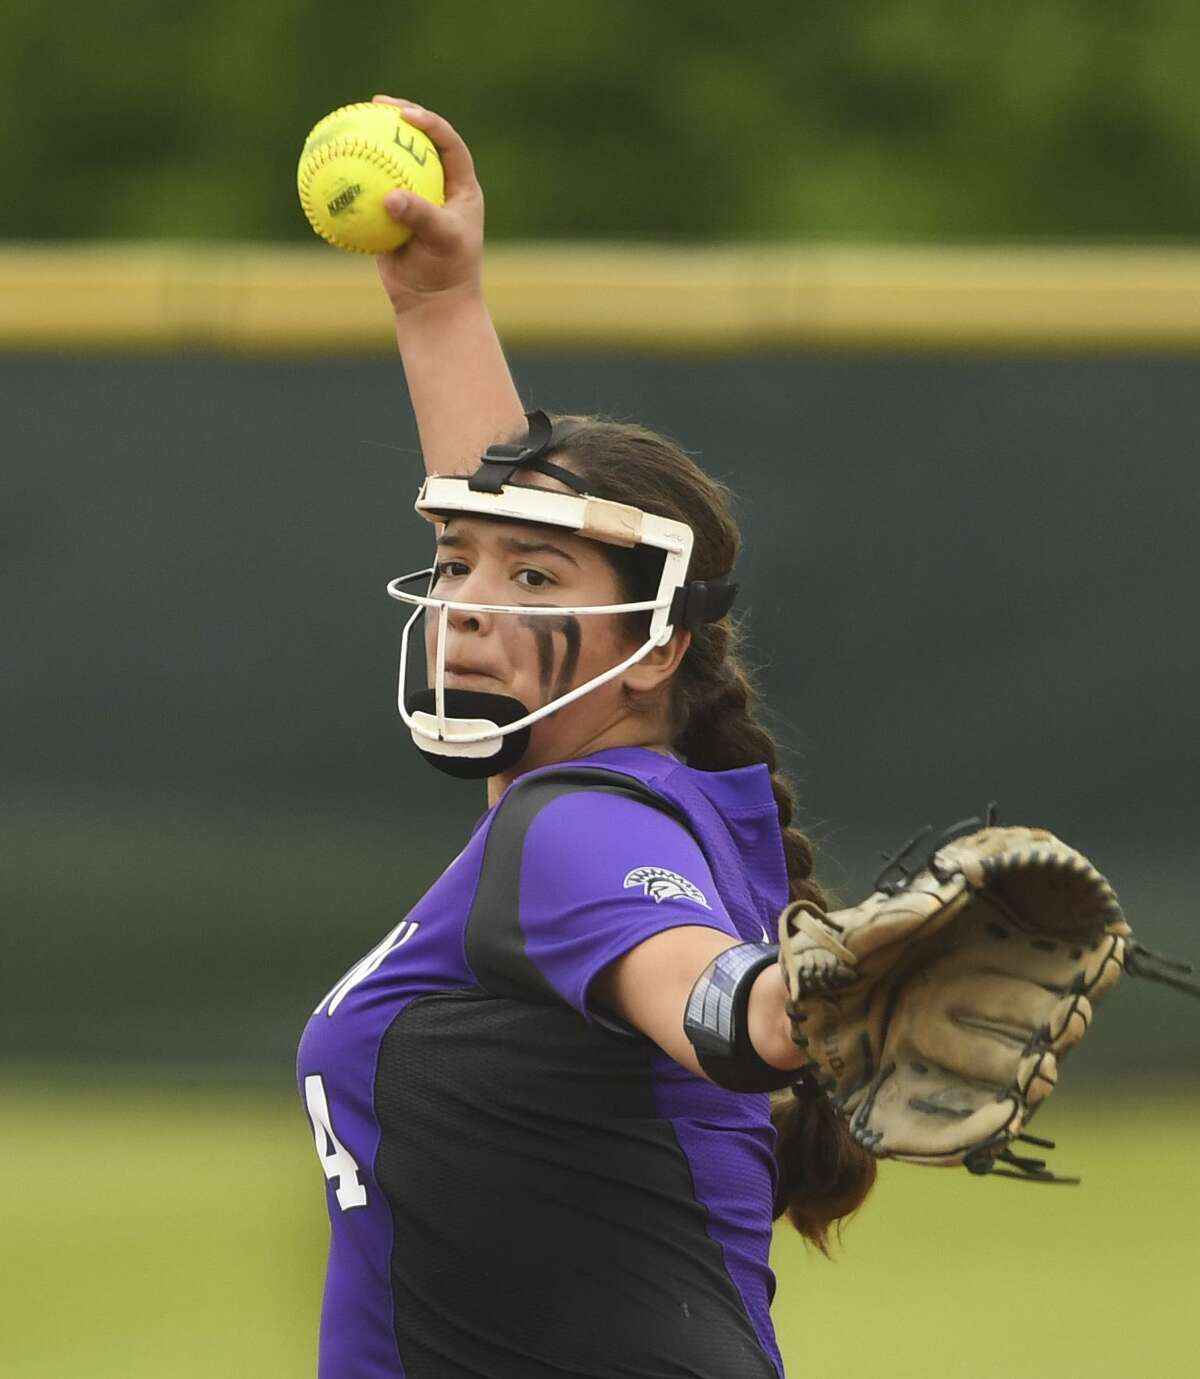 Warren pitcher Annika Literrio allowed one hit and struck out 11 in a complete-game win over Holmes.